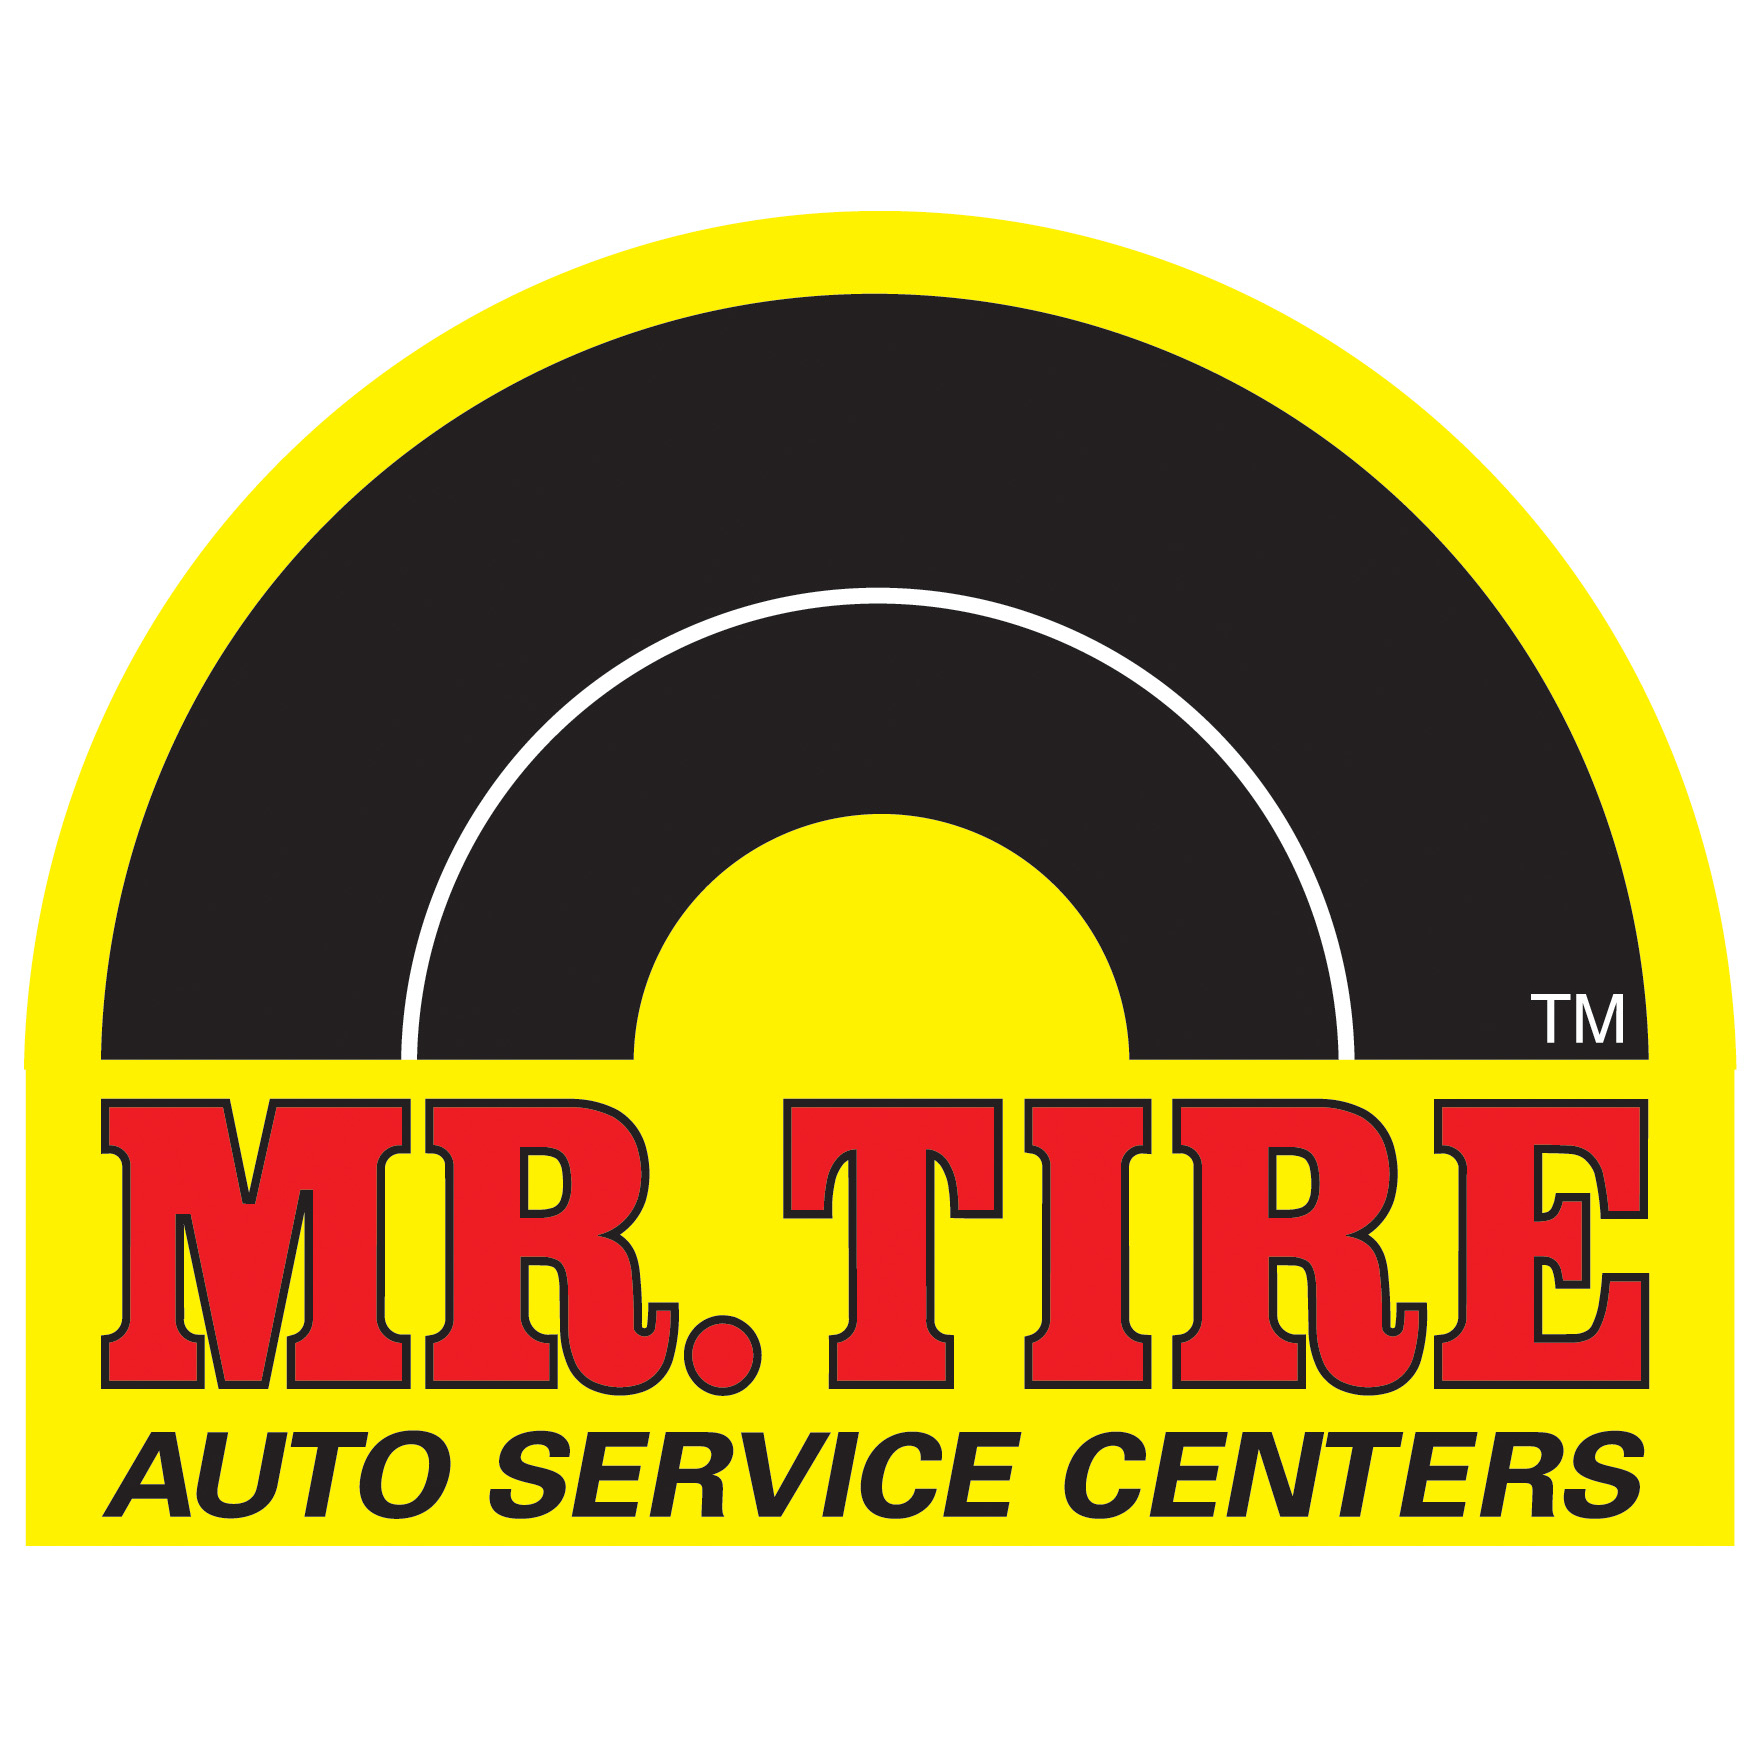 image of Mr Tire Auto Service Centers